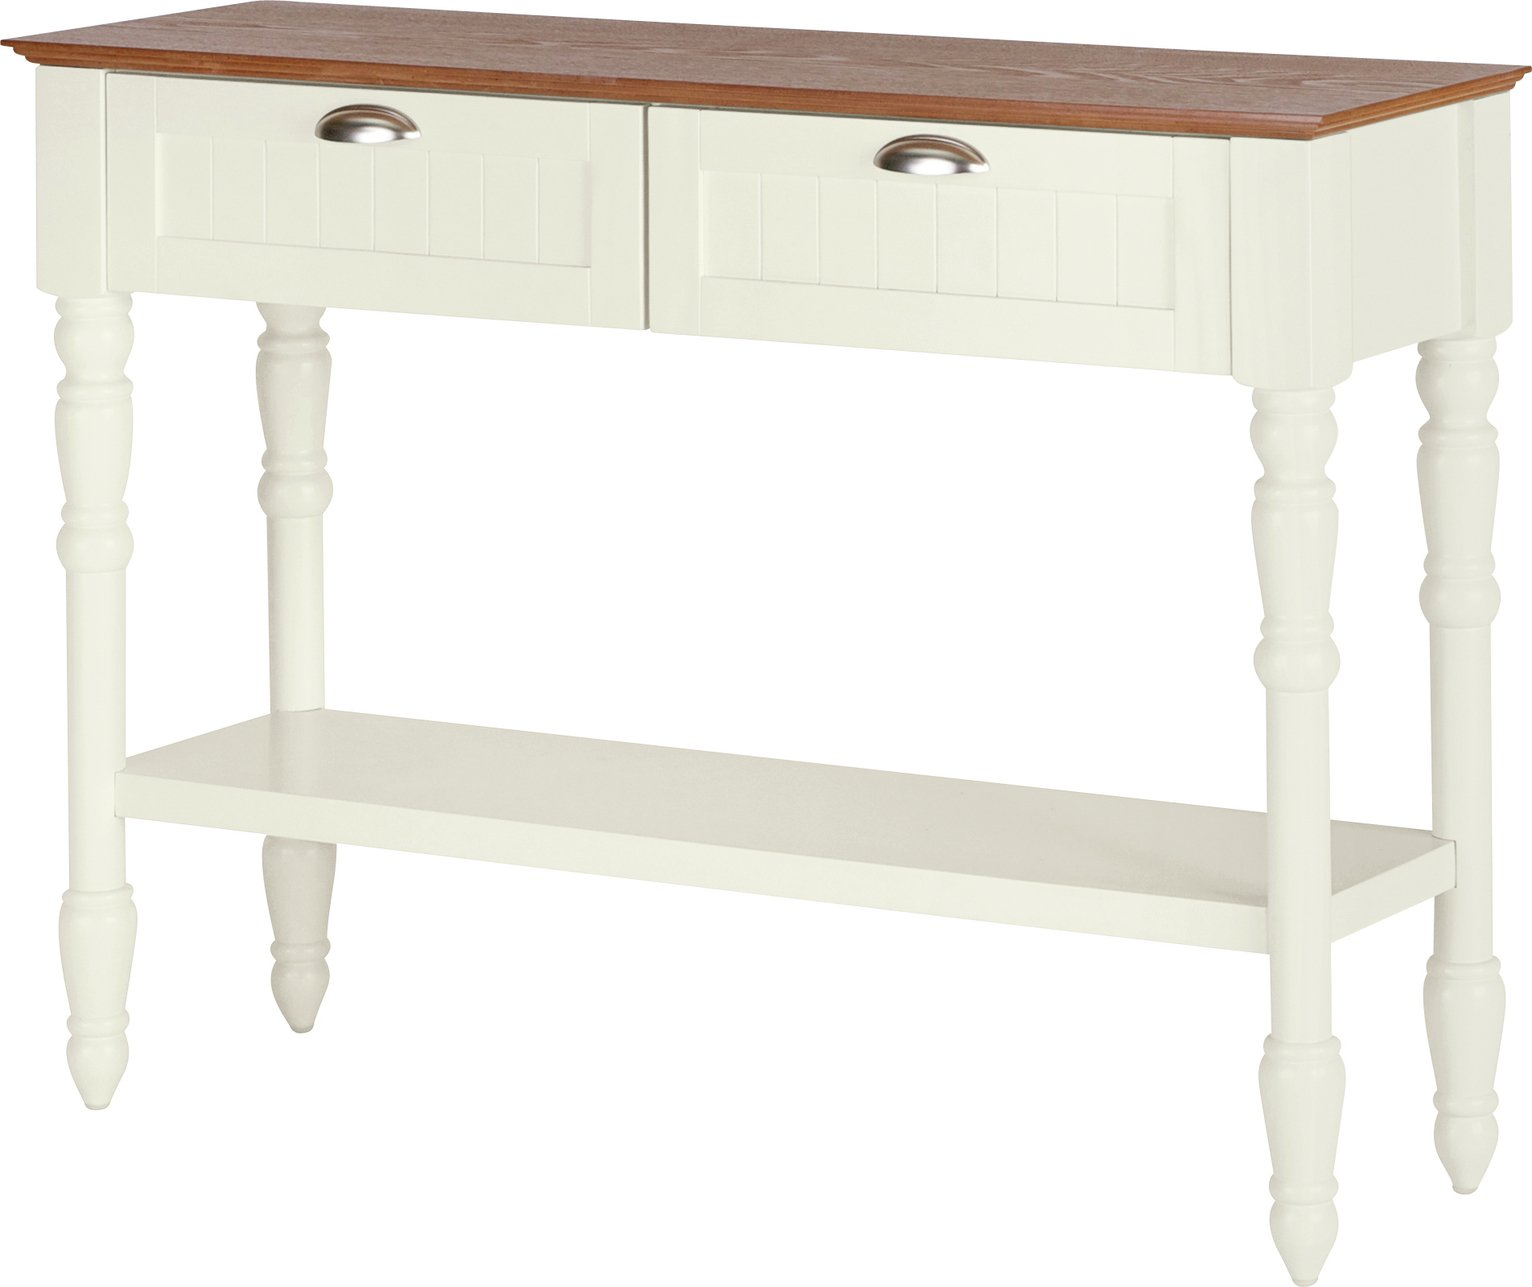 Argos Home Addington 2 Drw 1 Shelf Console Table - Two Tone